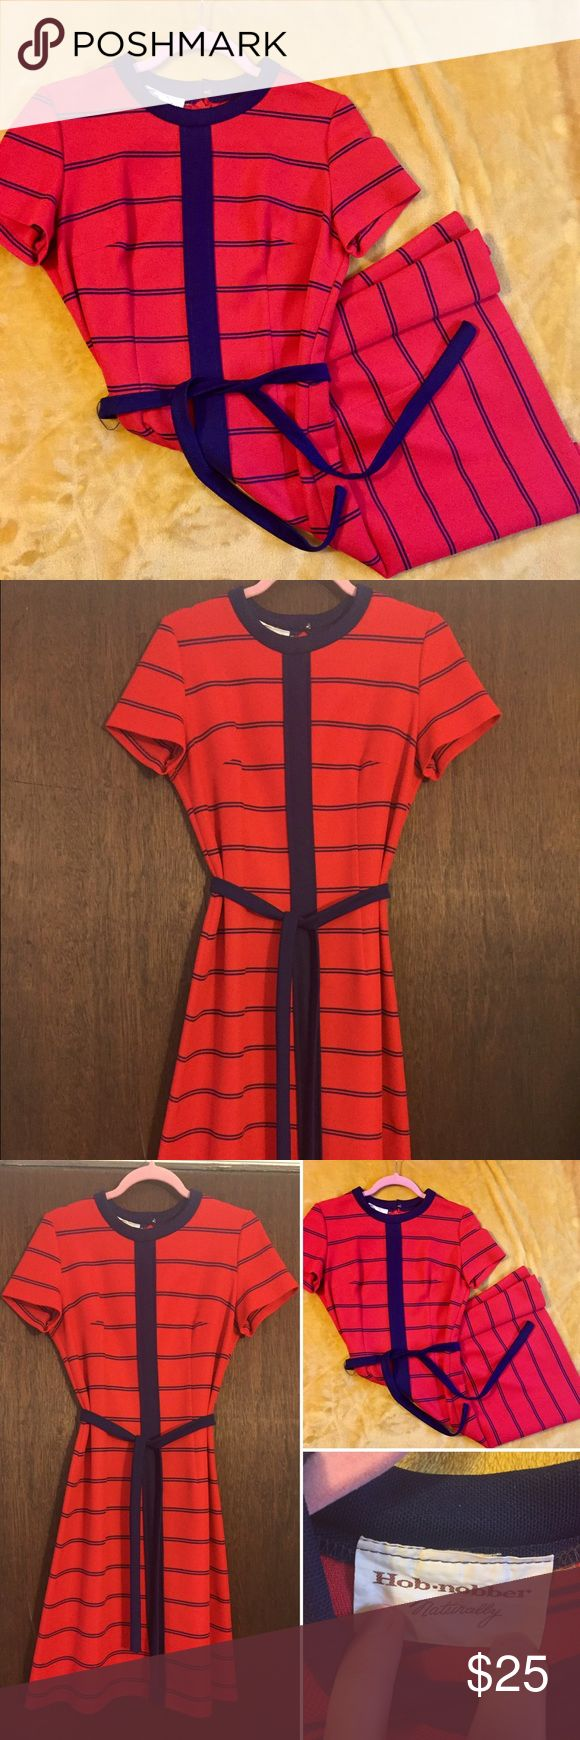 """Vintage amazing red & navy striped dress Vintage amazing red & navy striped dress. This is like a polyester knit, no size label but fits a size 6 nicely. 39"""" length. Excellent condition. Vintage Dresses Midi"""